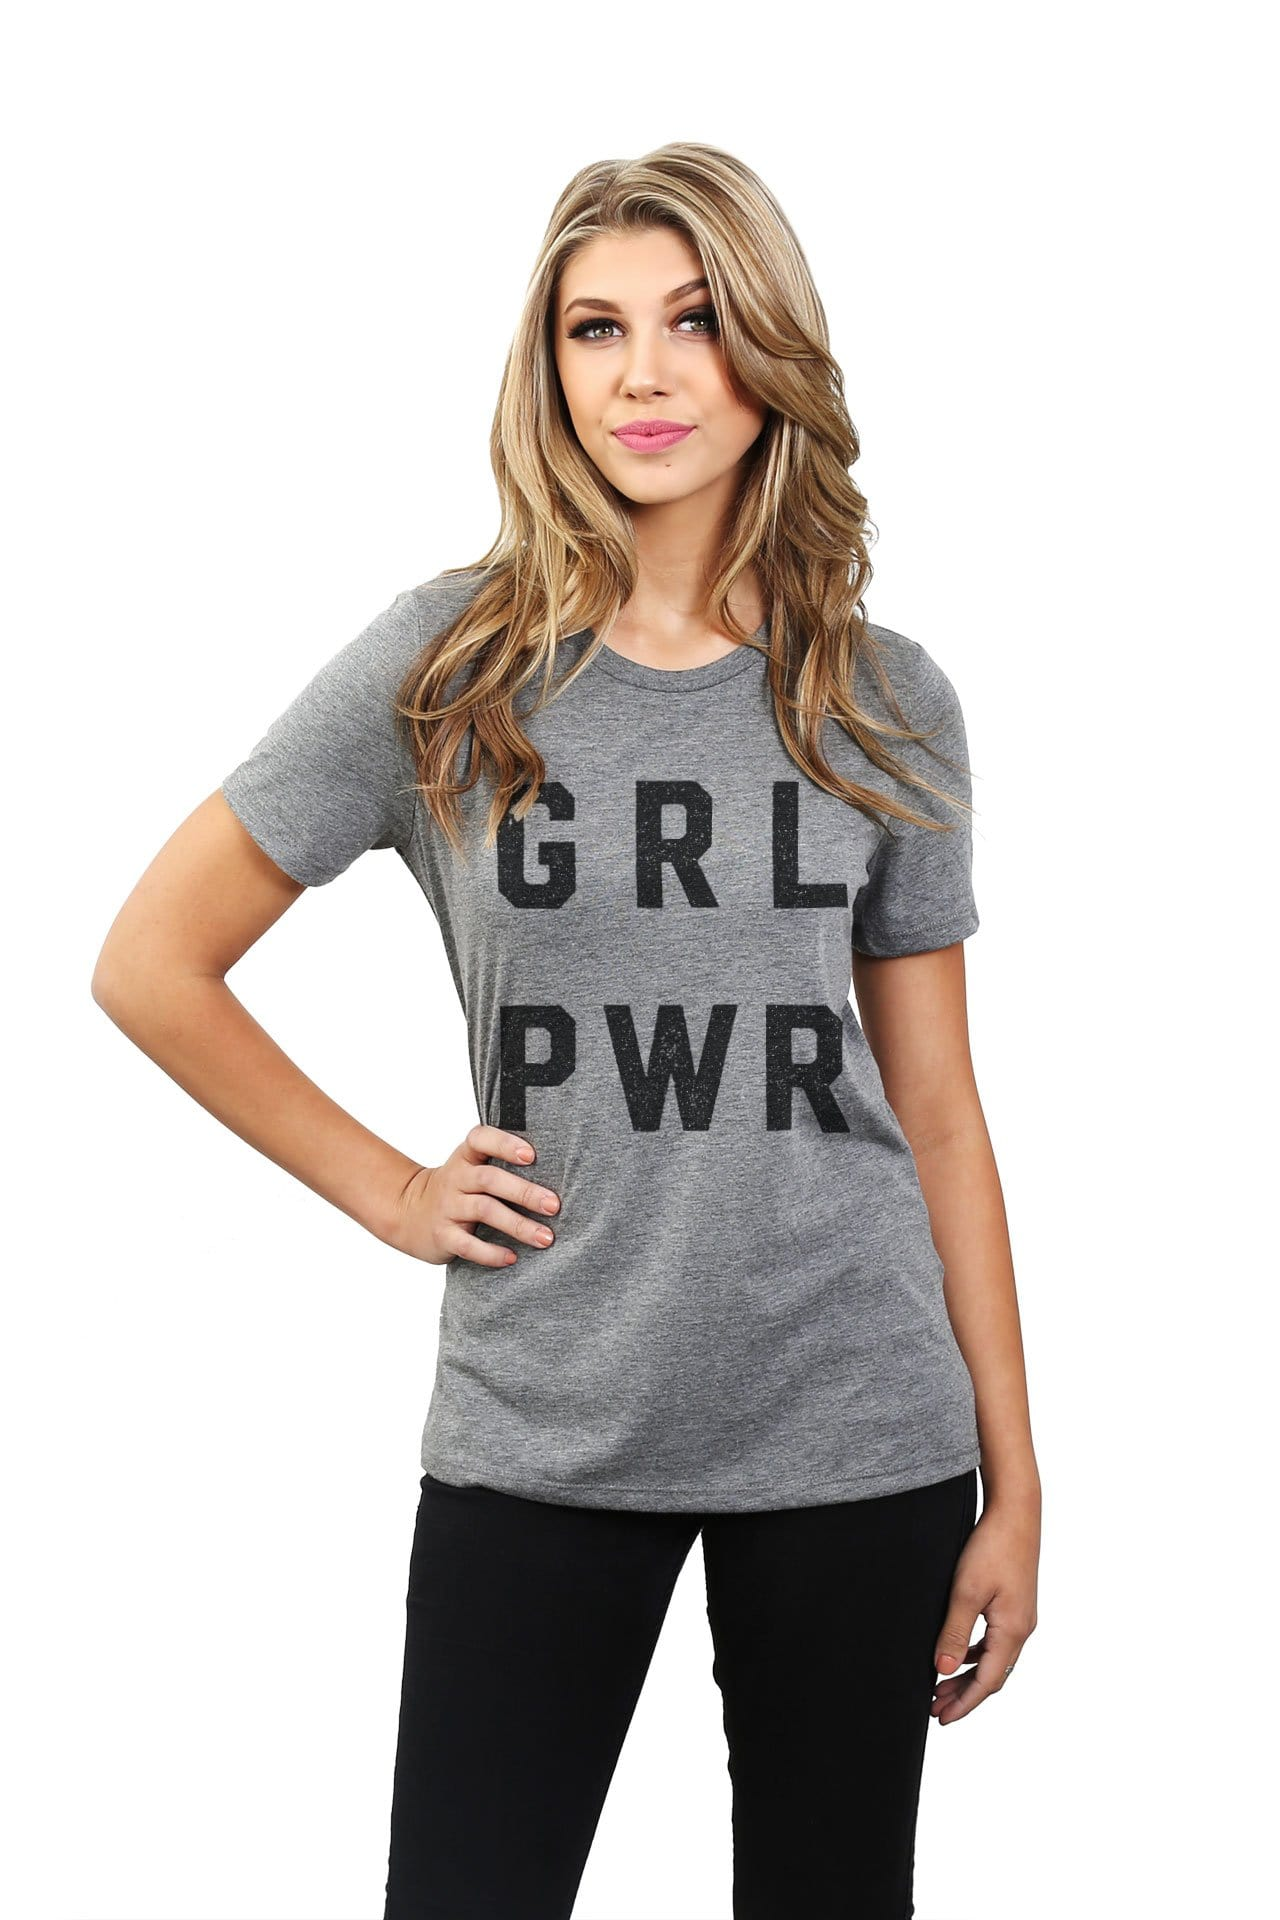 GIRL POWER - Thread Tank | Stories You Can Wear | T-Shirts, Tank Tops and Sweatshirts